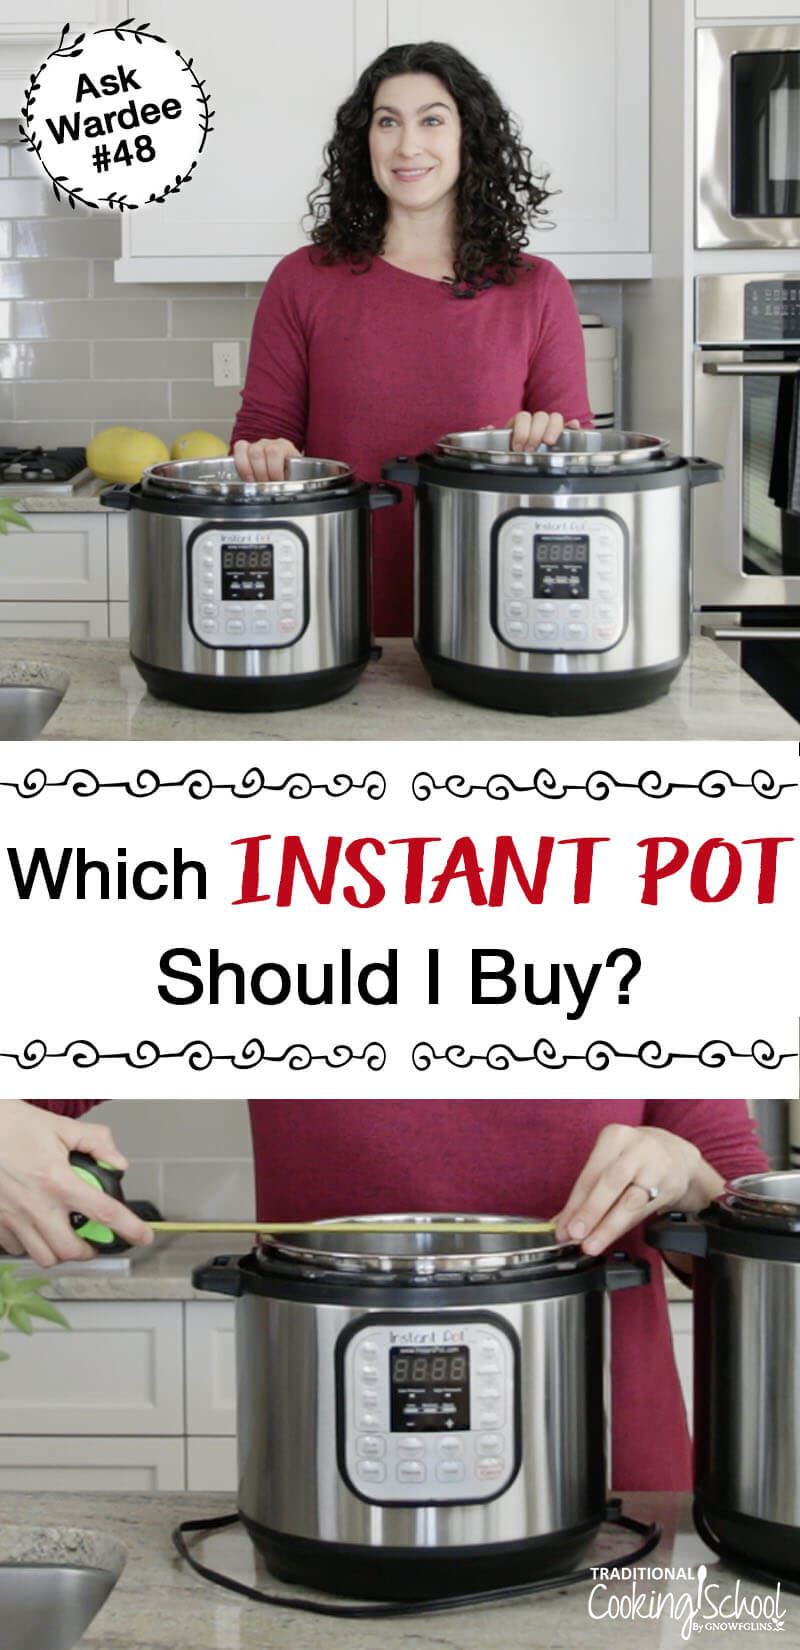 "photo collage of a woman in the kitchen with two different sized instant pots, with text overlay: ""Which Instant Pot Should I Buy?"""